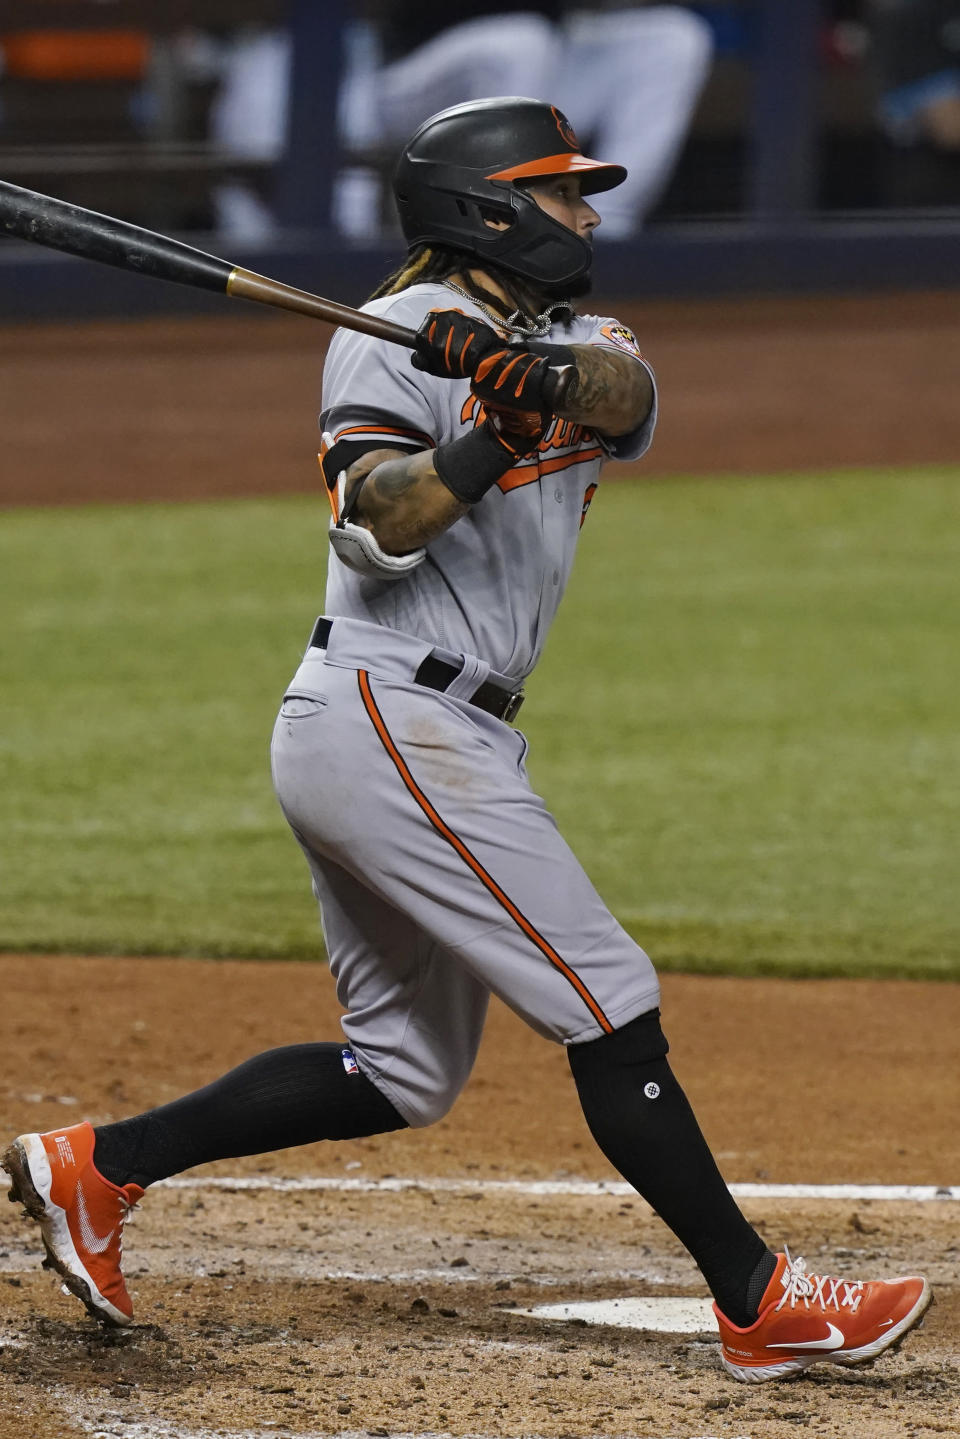 Baltimore Orioles shortstop Freddy Galvis (2) hits a home run during the third inning of a baseball game against the Miami Marlins, Tuesday, April 20, 2021, in Miami. (AP Photo/Marta Lavandier)